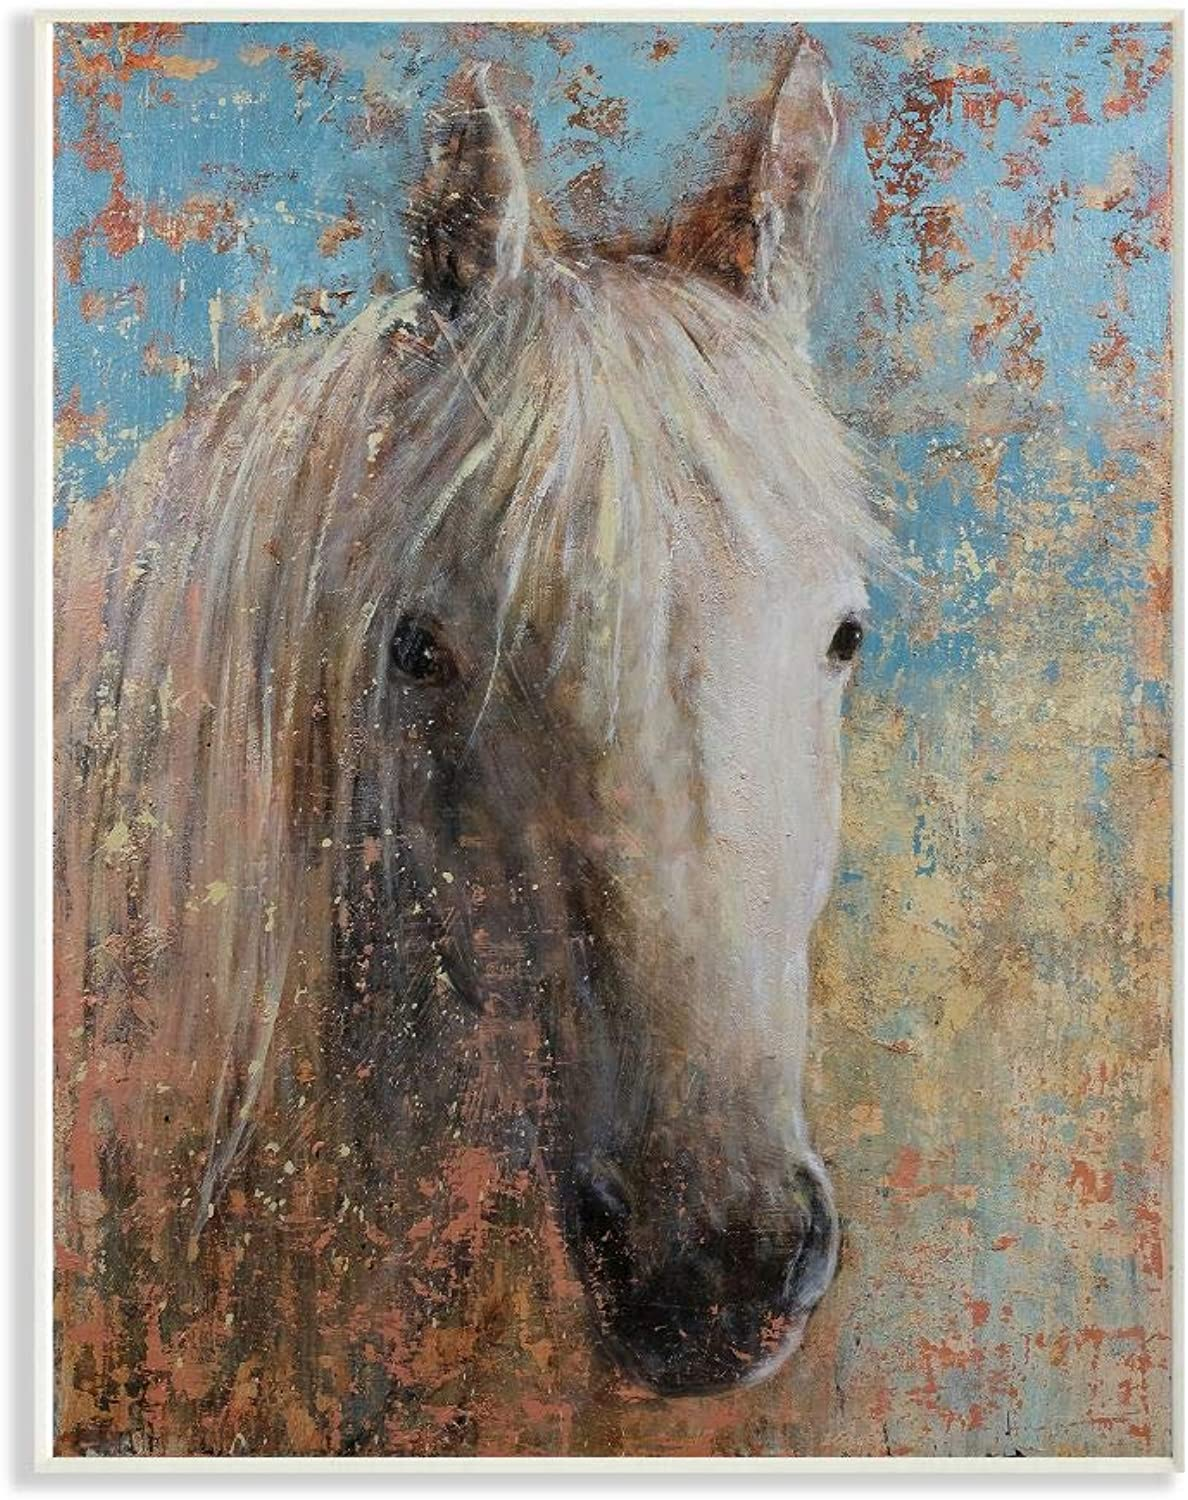 The Stupell Home Decor Collection aap-289_wd_12x18 White Horse Portrait Distressed Surface bluee Painting Wall Plaque Art, 12 x 18